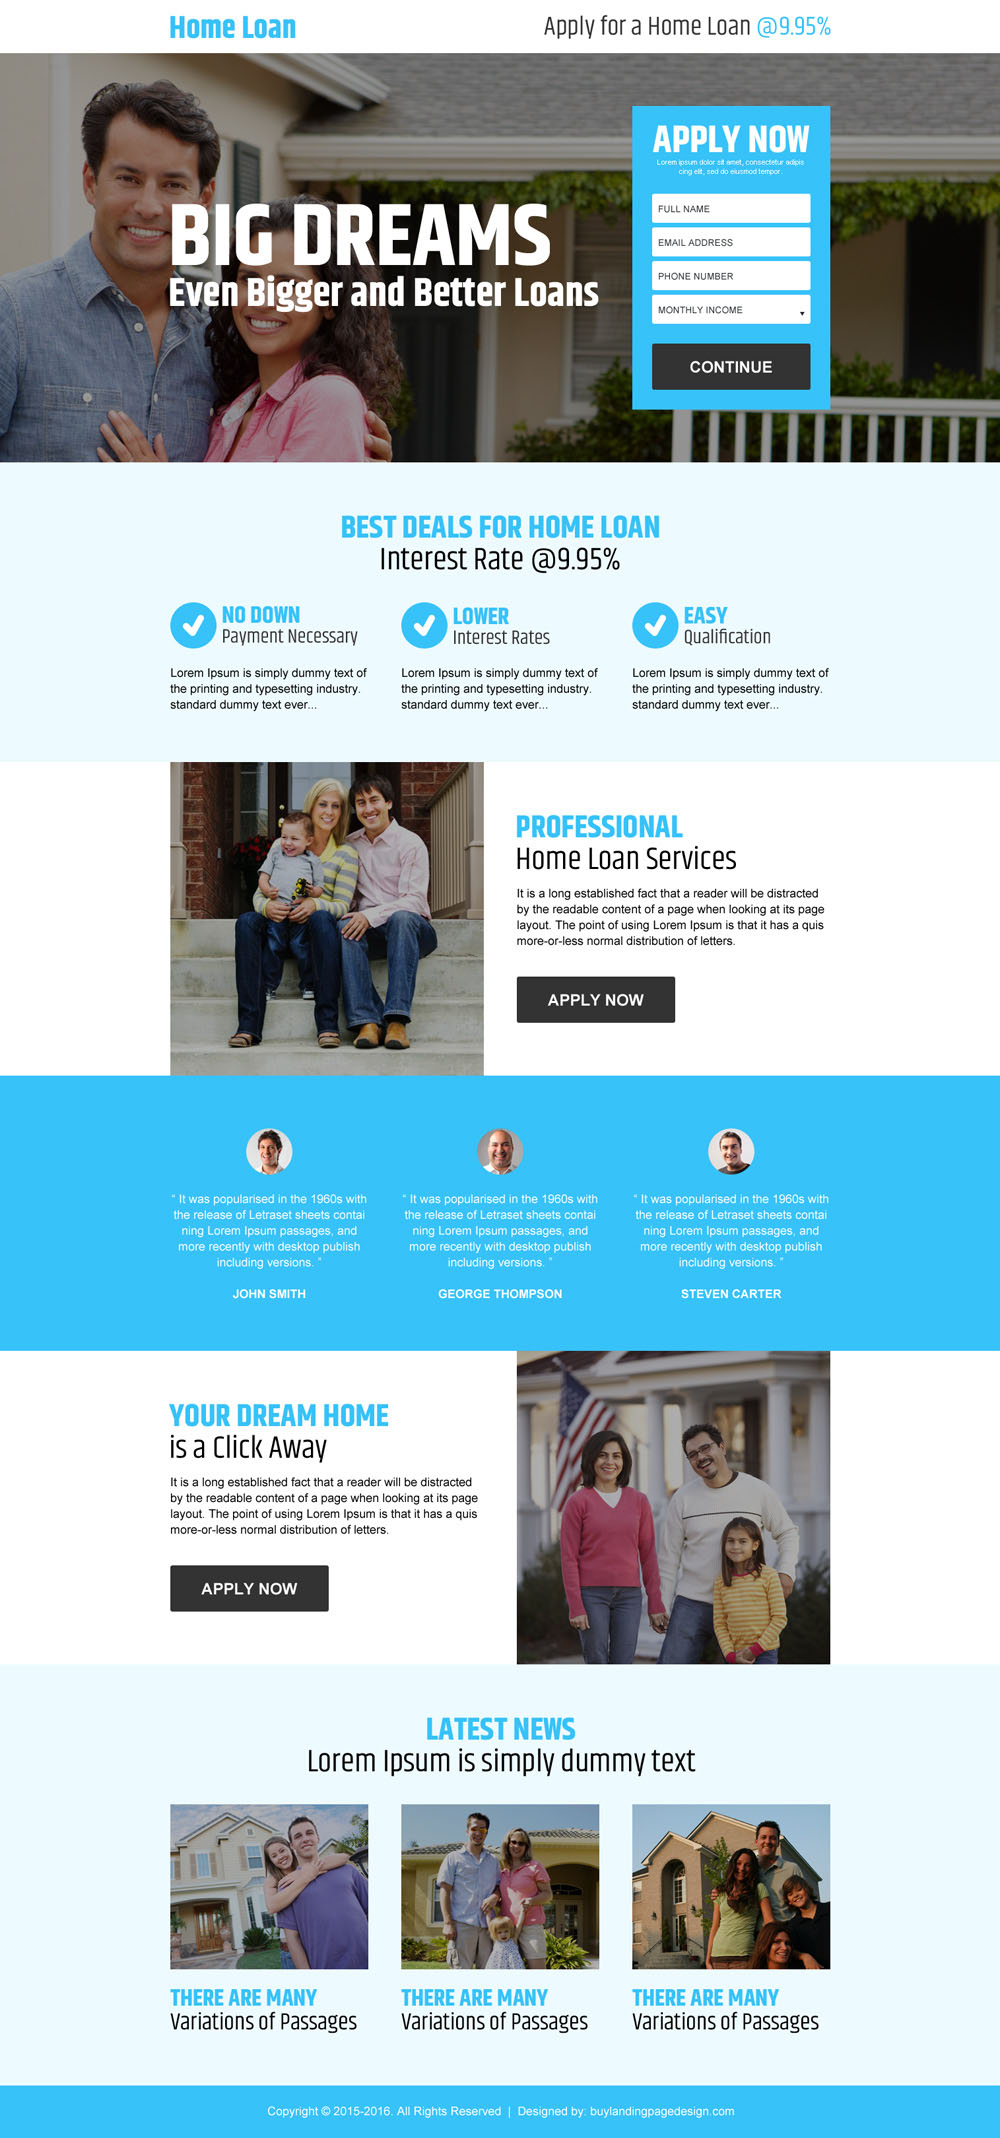 apply-for-a-home-loan-lead-capture-converting-landing-page-design-002